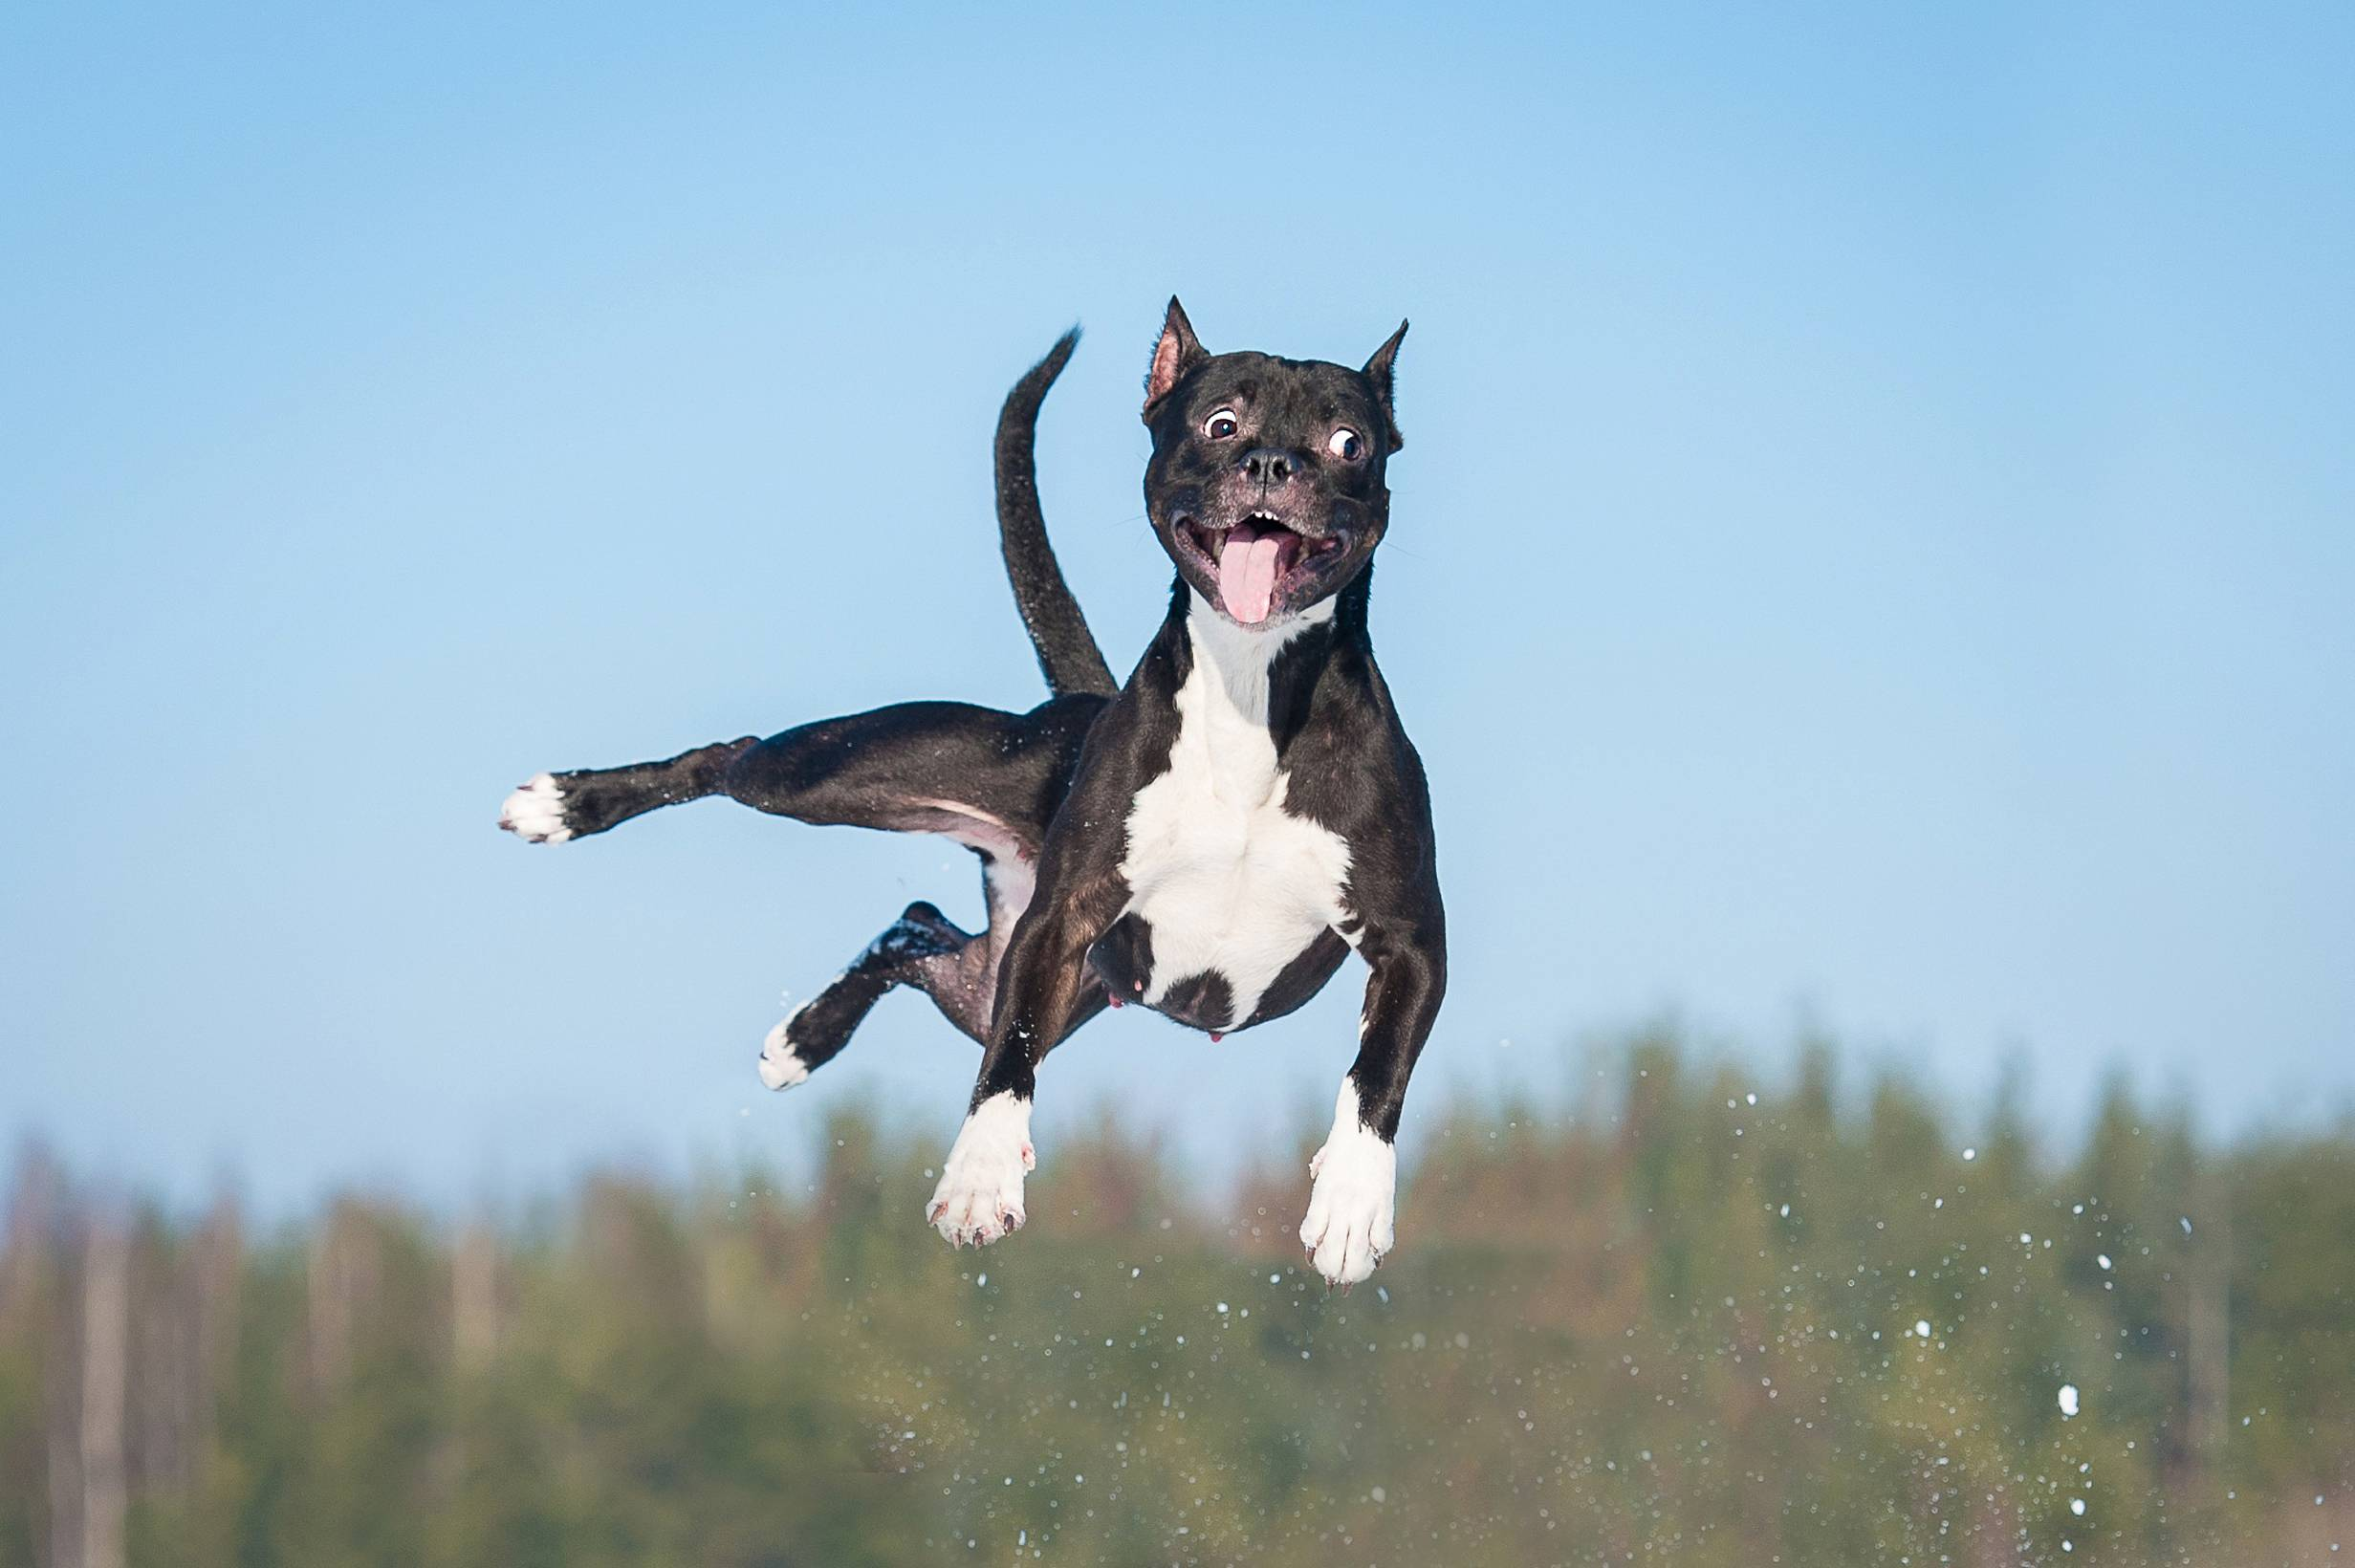 Senior Probiotic Bites™- dog jumping in air